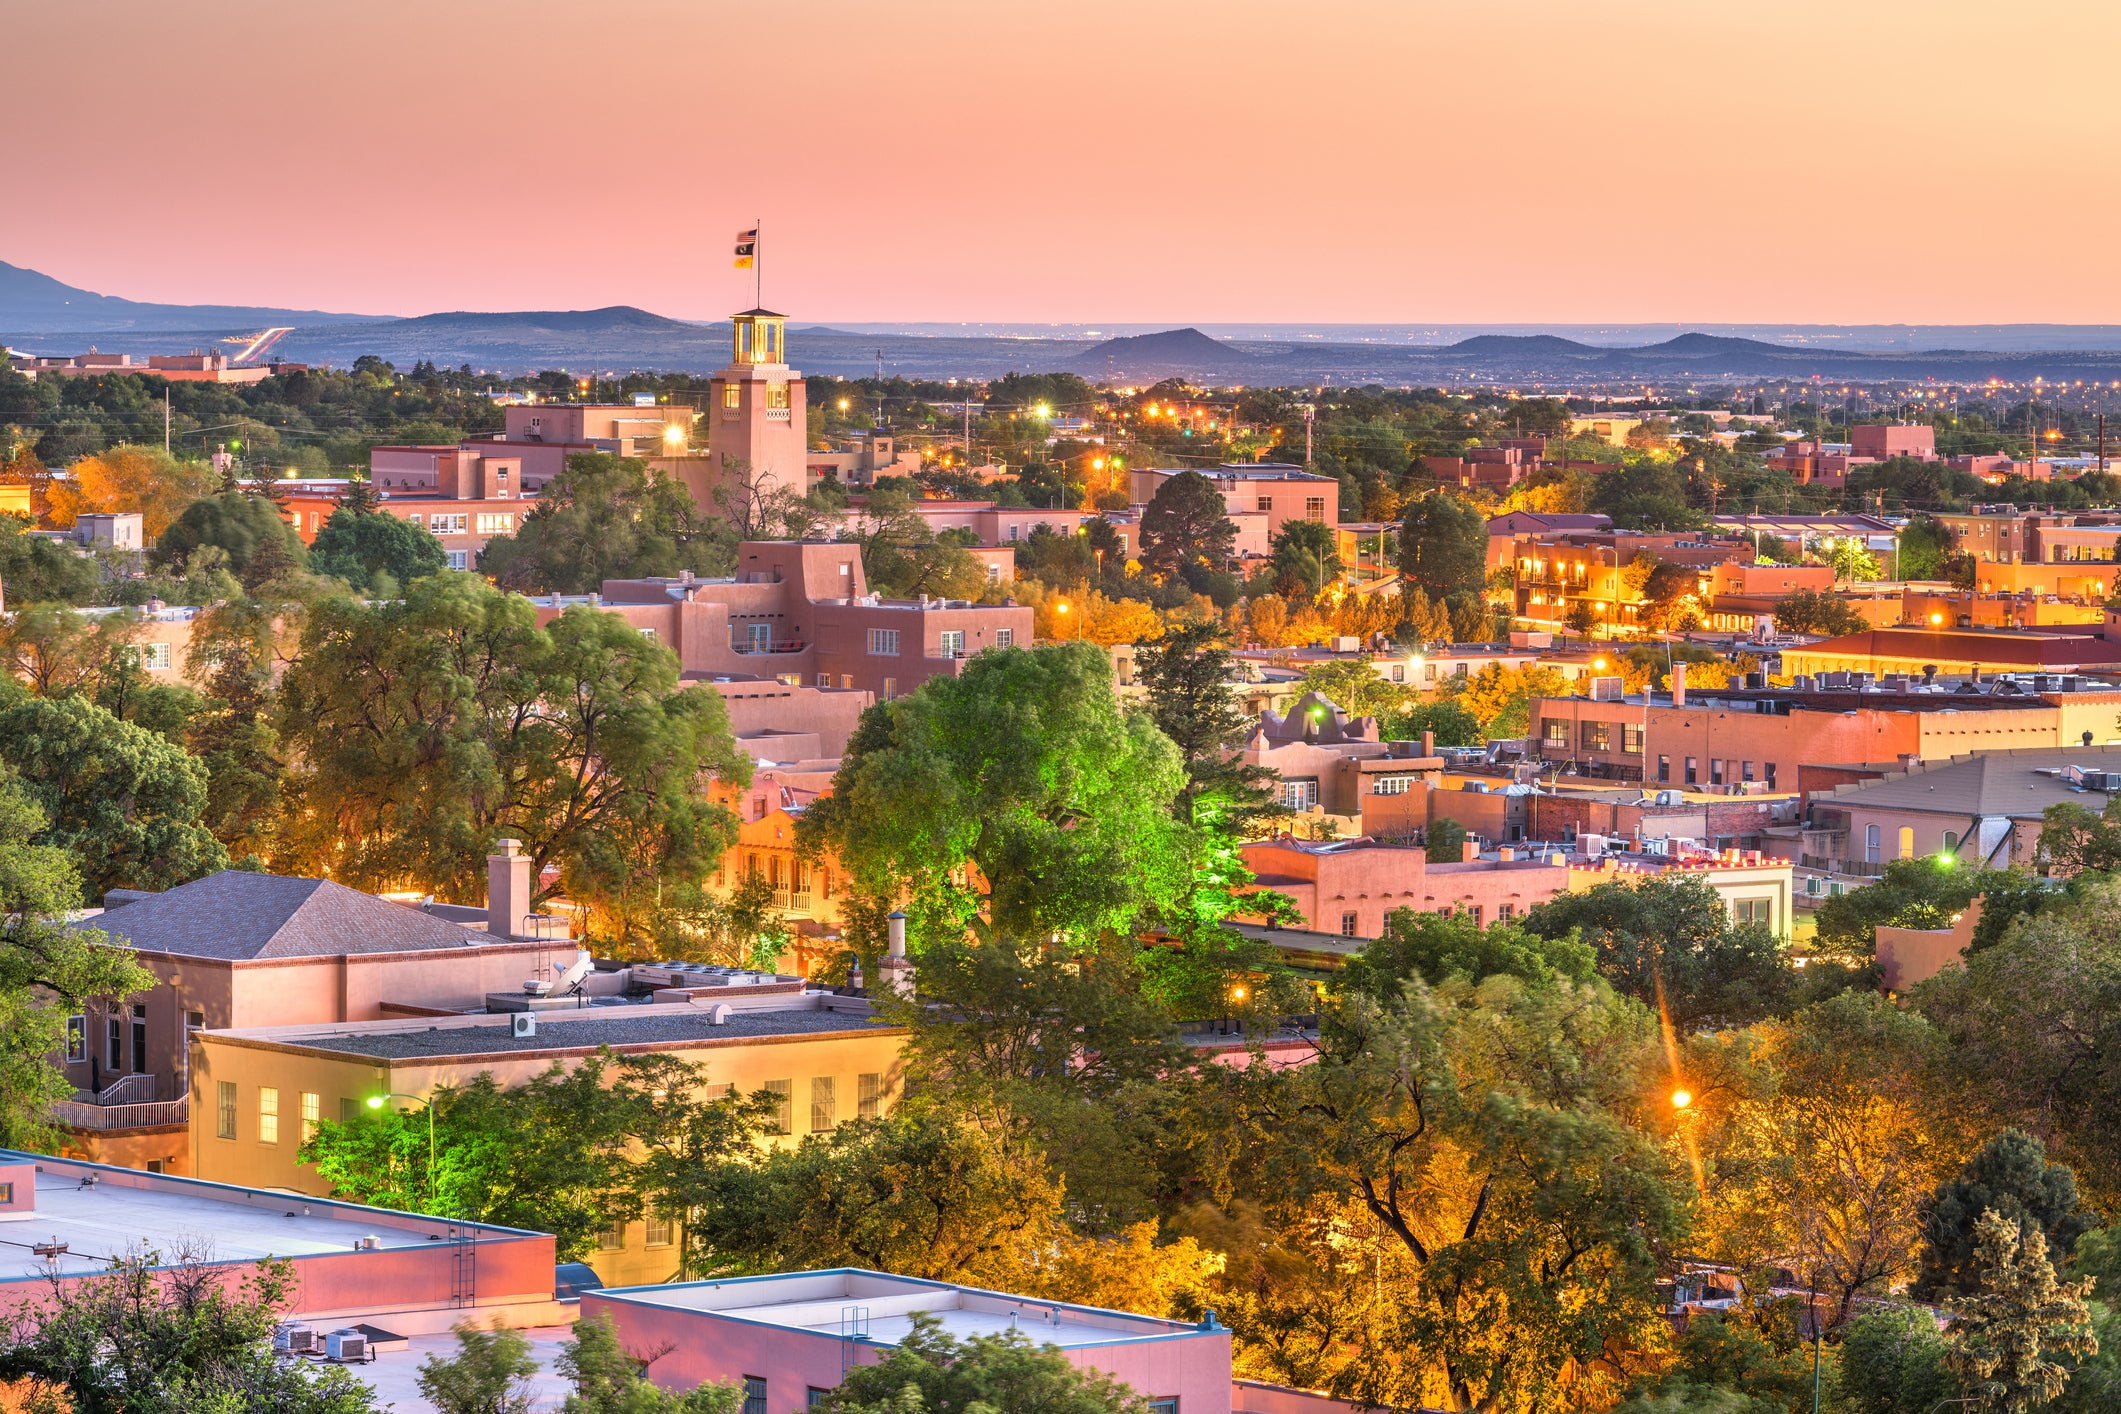 Santa Fe city guide: Where to eat, drink, shop and stay in the US's oldest capital